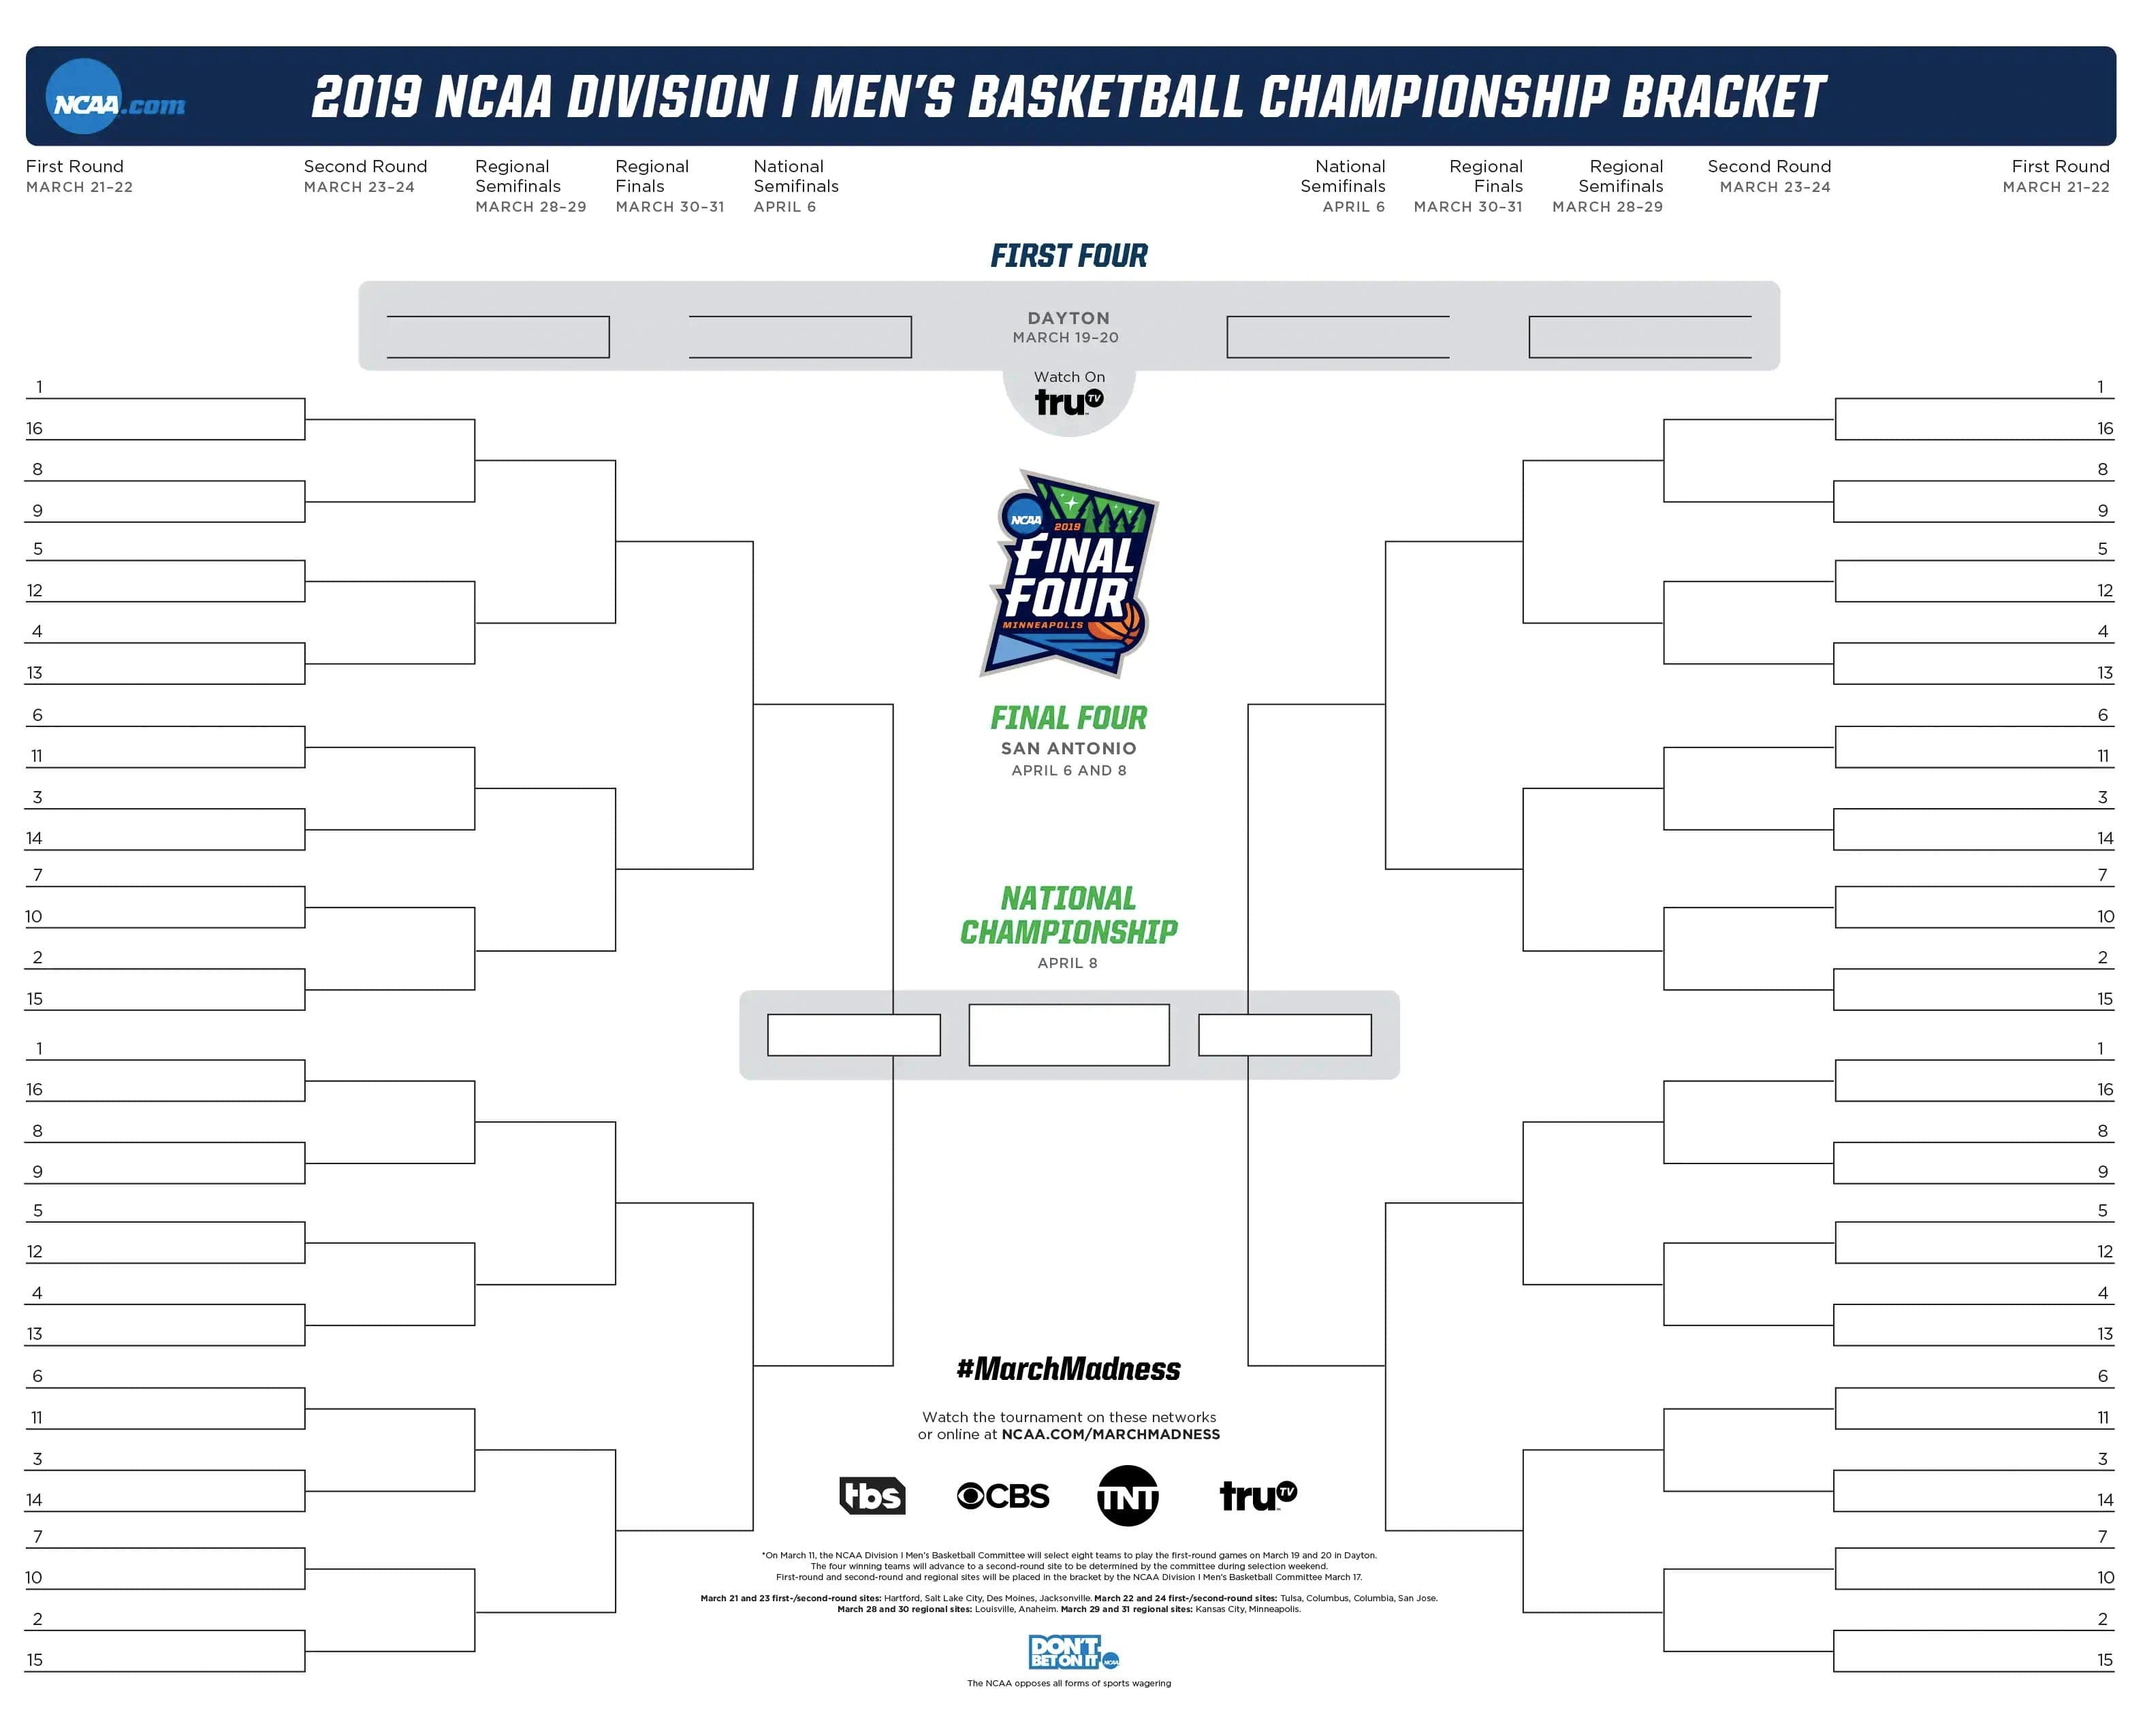 How To Play The Official March Madness Bracket Challenge Game | Ncaa - Free Printable March Madness Bracket